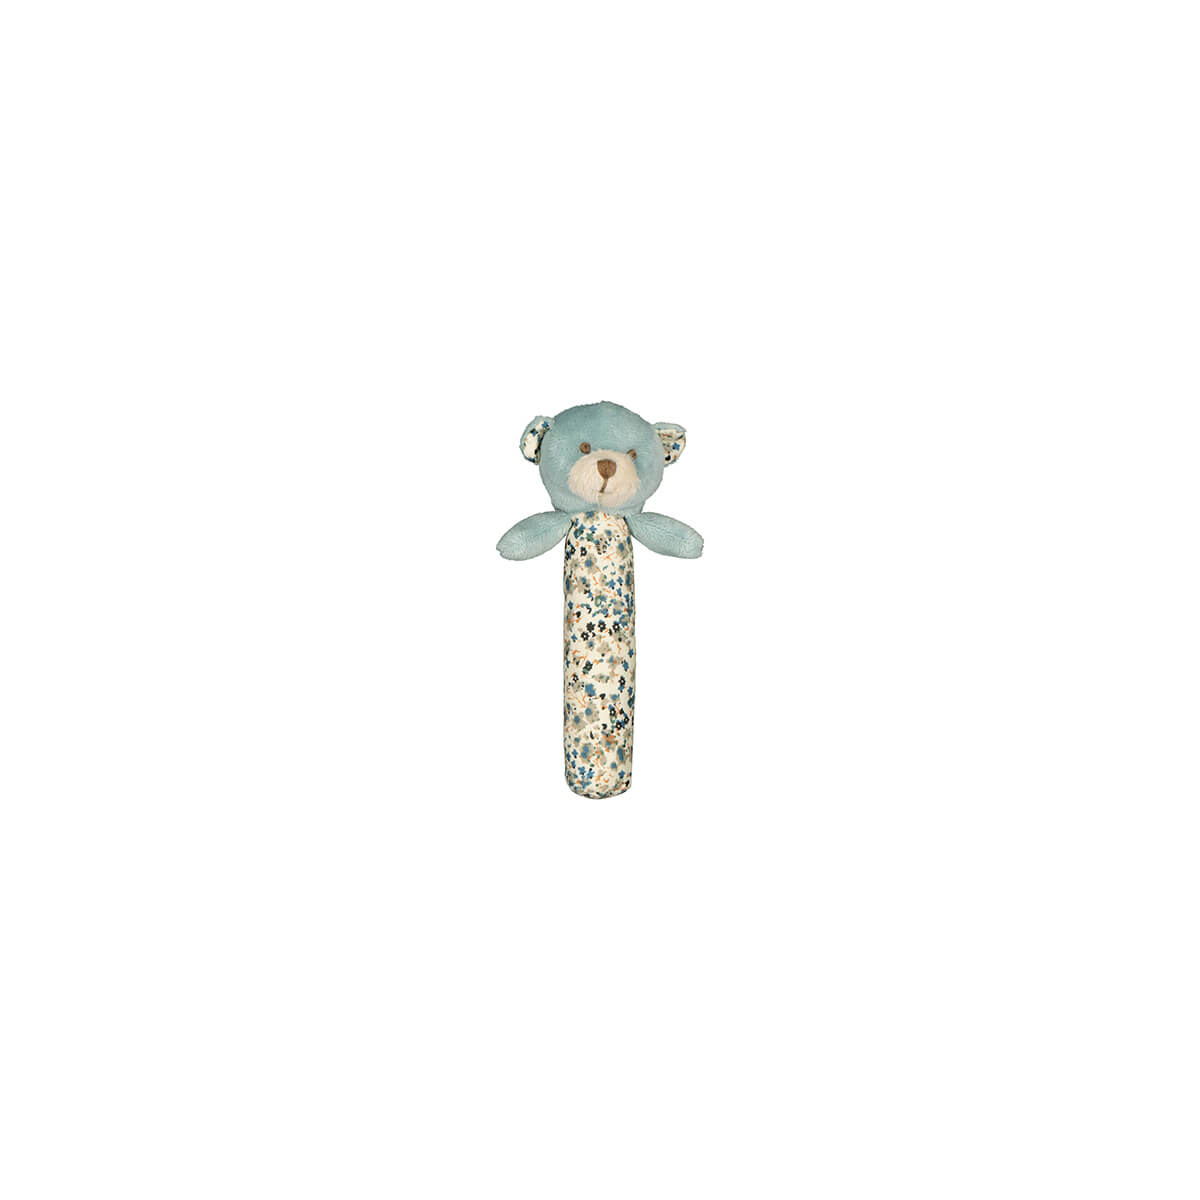 Childs rattle photography